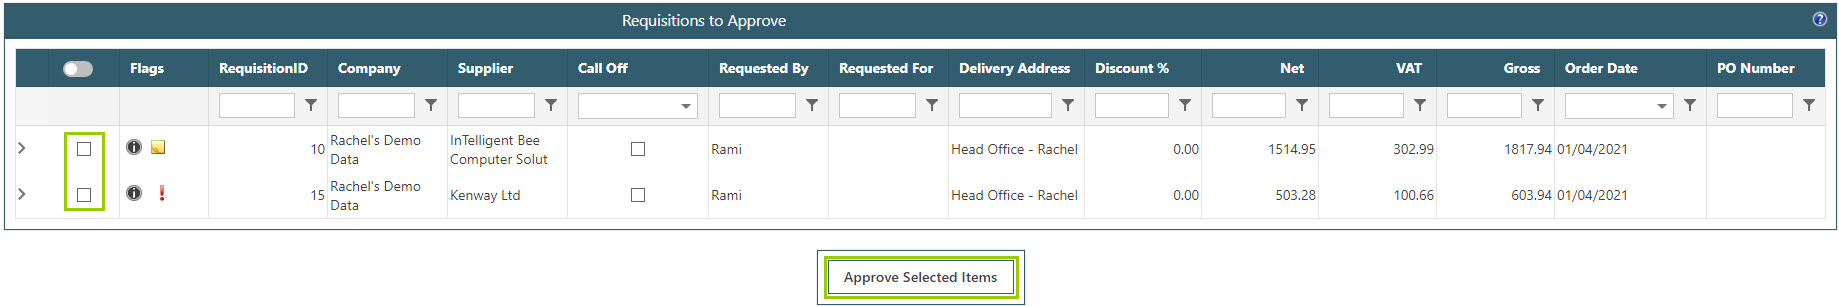 Sicon WAP Purchase Requisitions Help and User Guide - Requisition HUG Section 8.1 Image 2